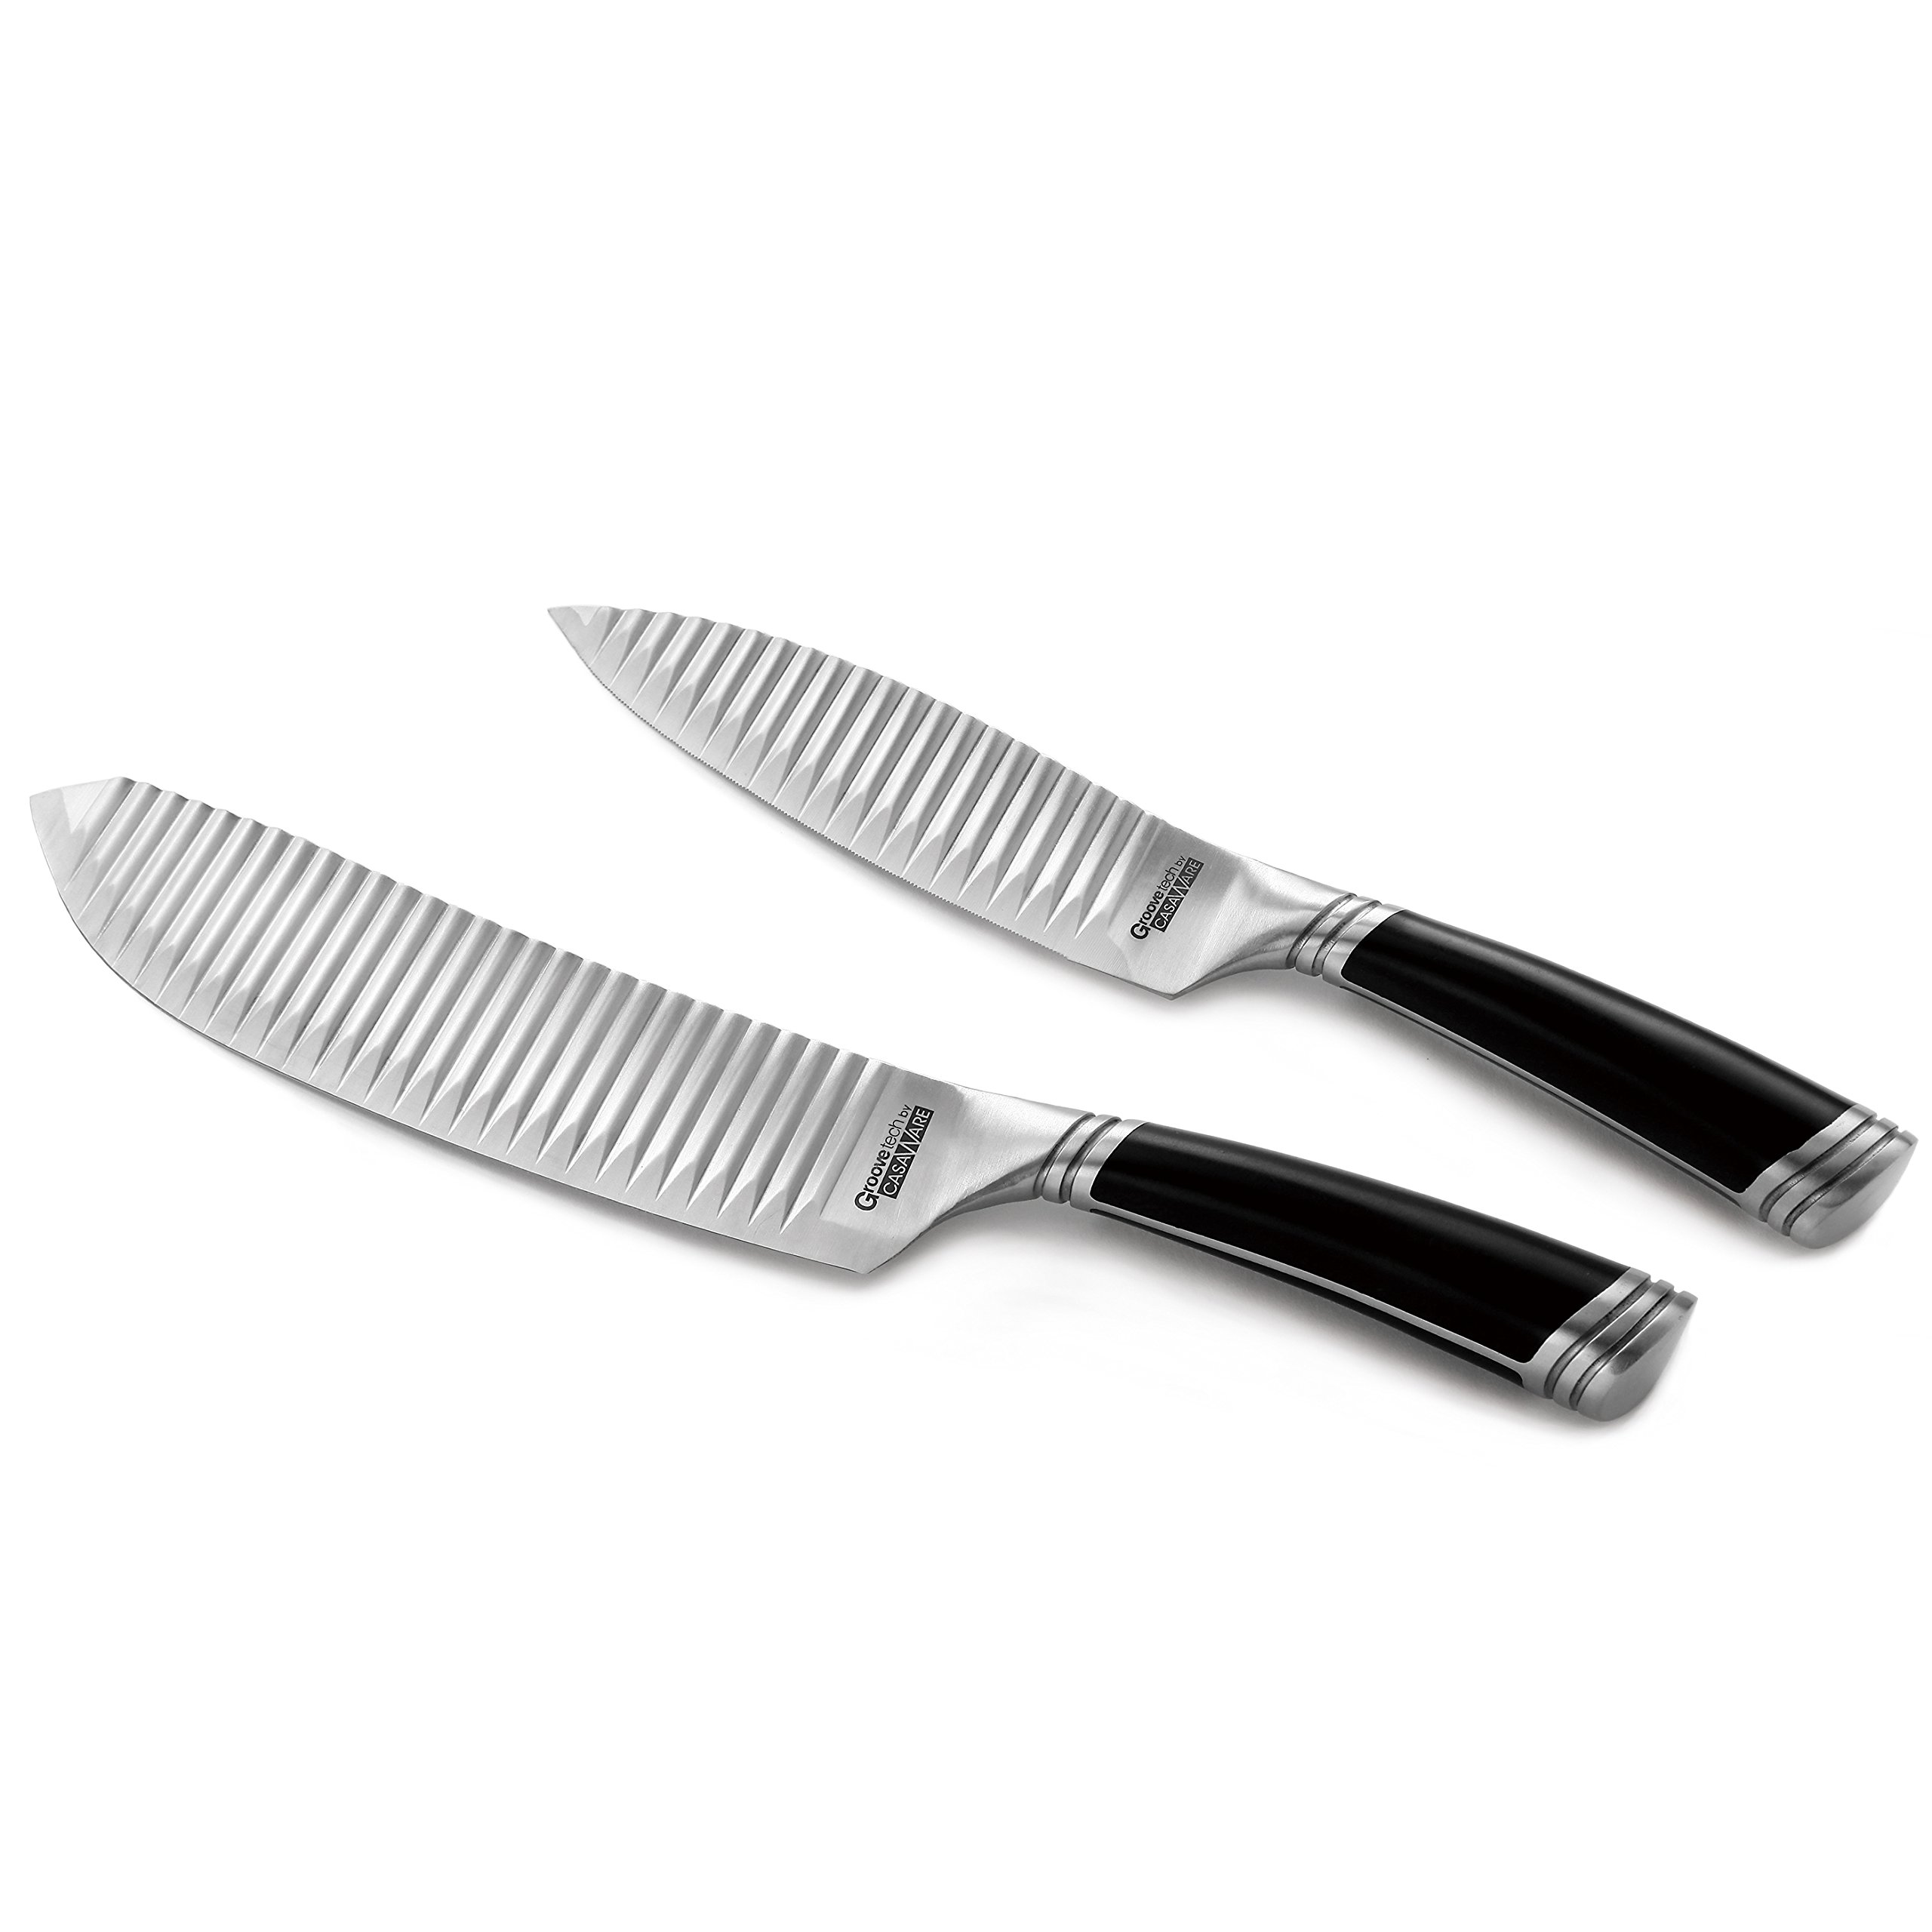 casaWare Groovetech 2-Piece Knife Set (6-Inch Serrated Utility and 8-Inch All Purpose Knife) by casaWare